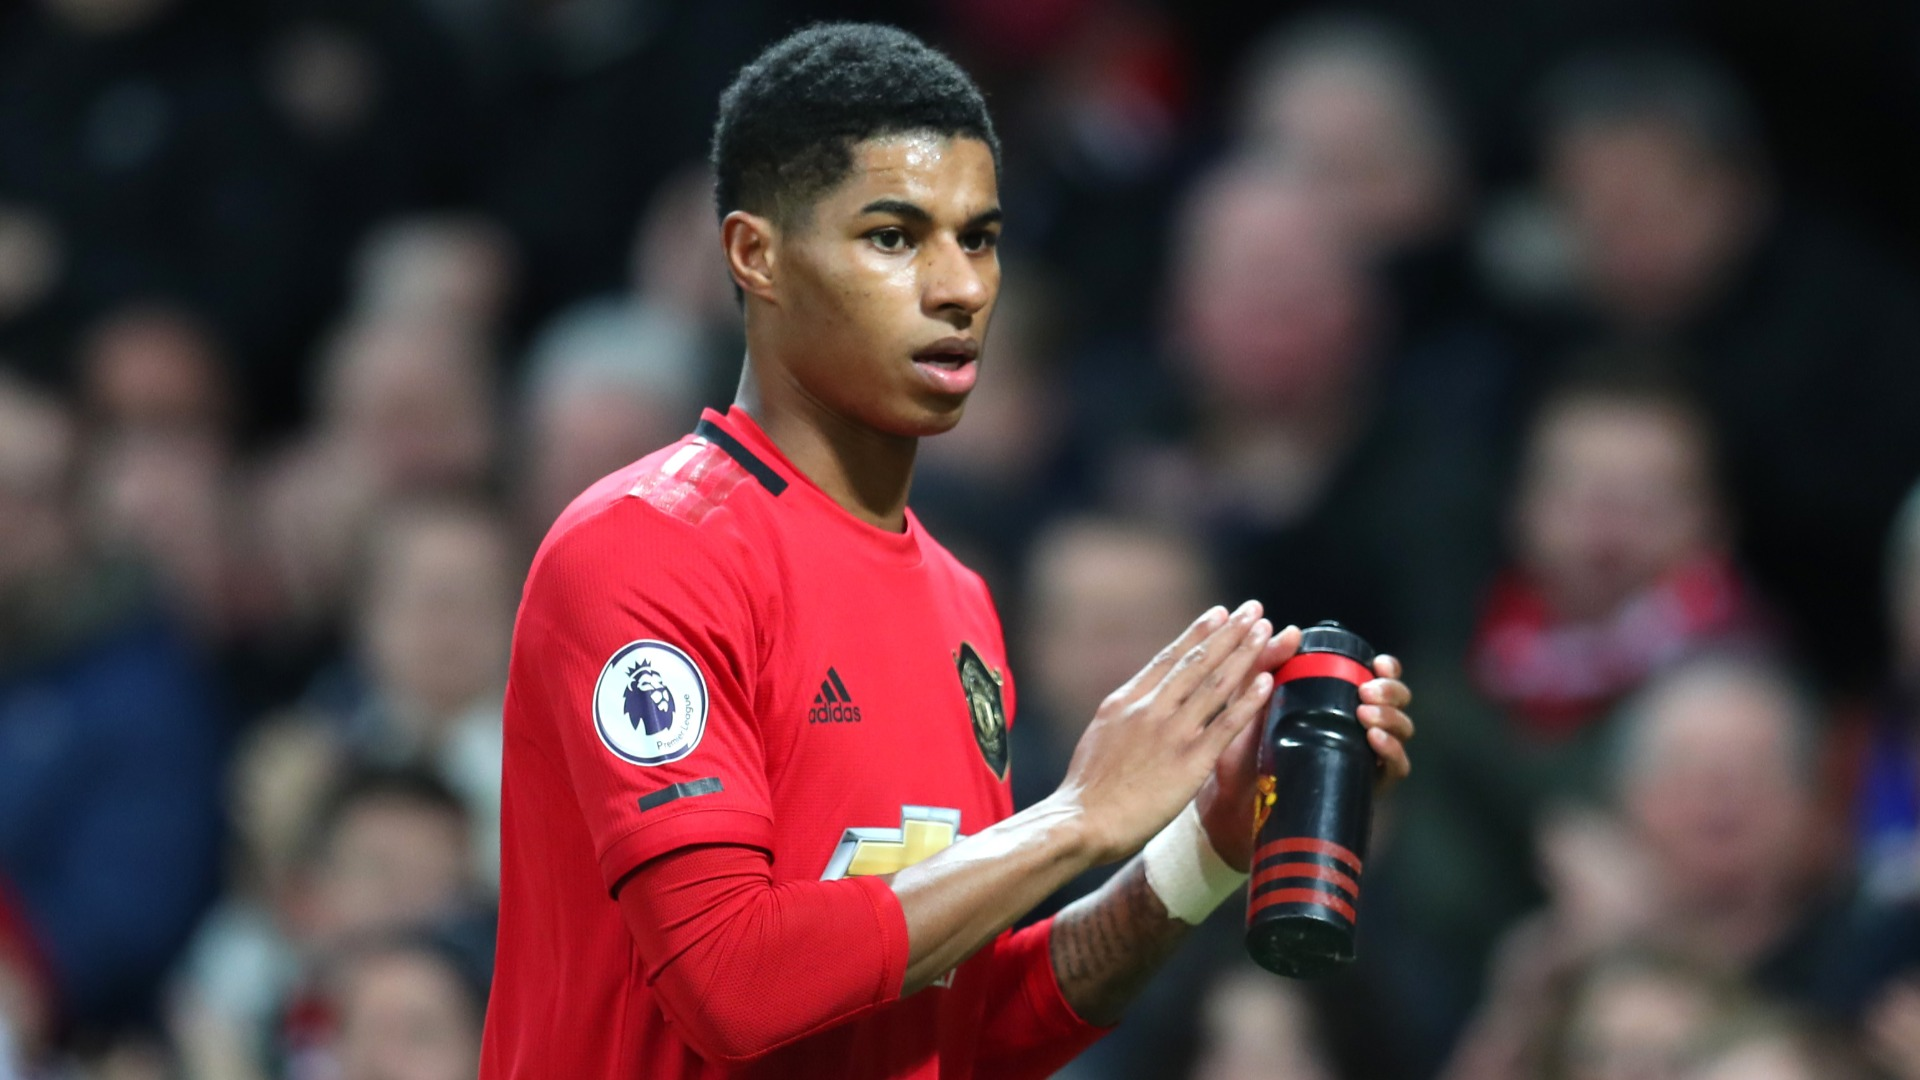 Man Utd's Rashford pleads with UK government to continue free meals in open letter